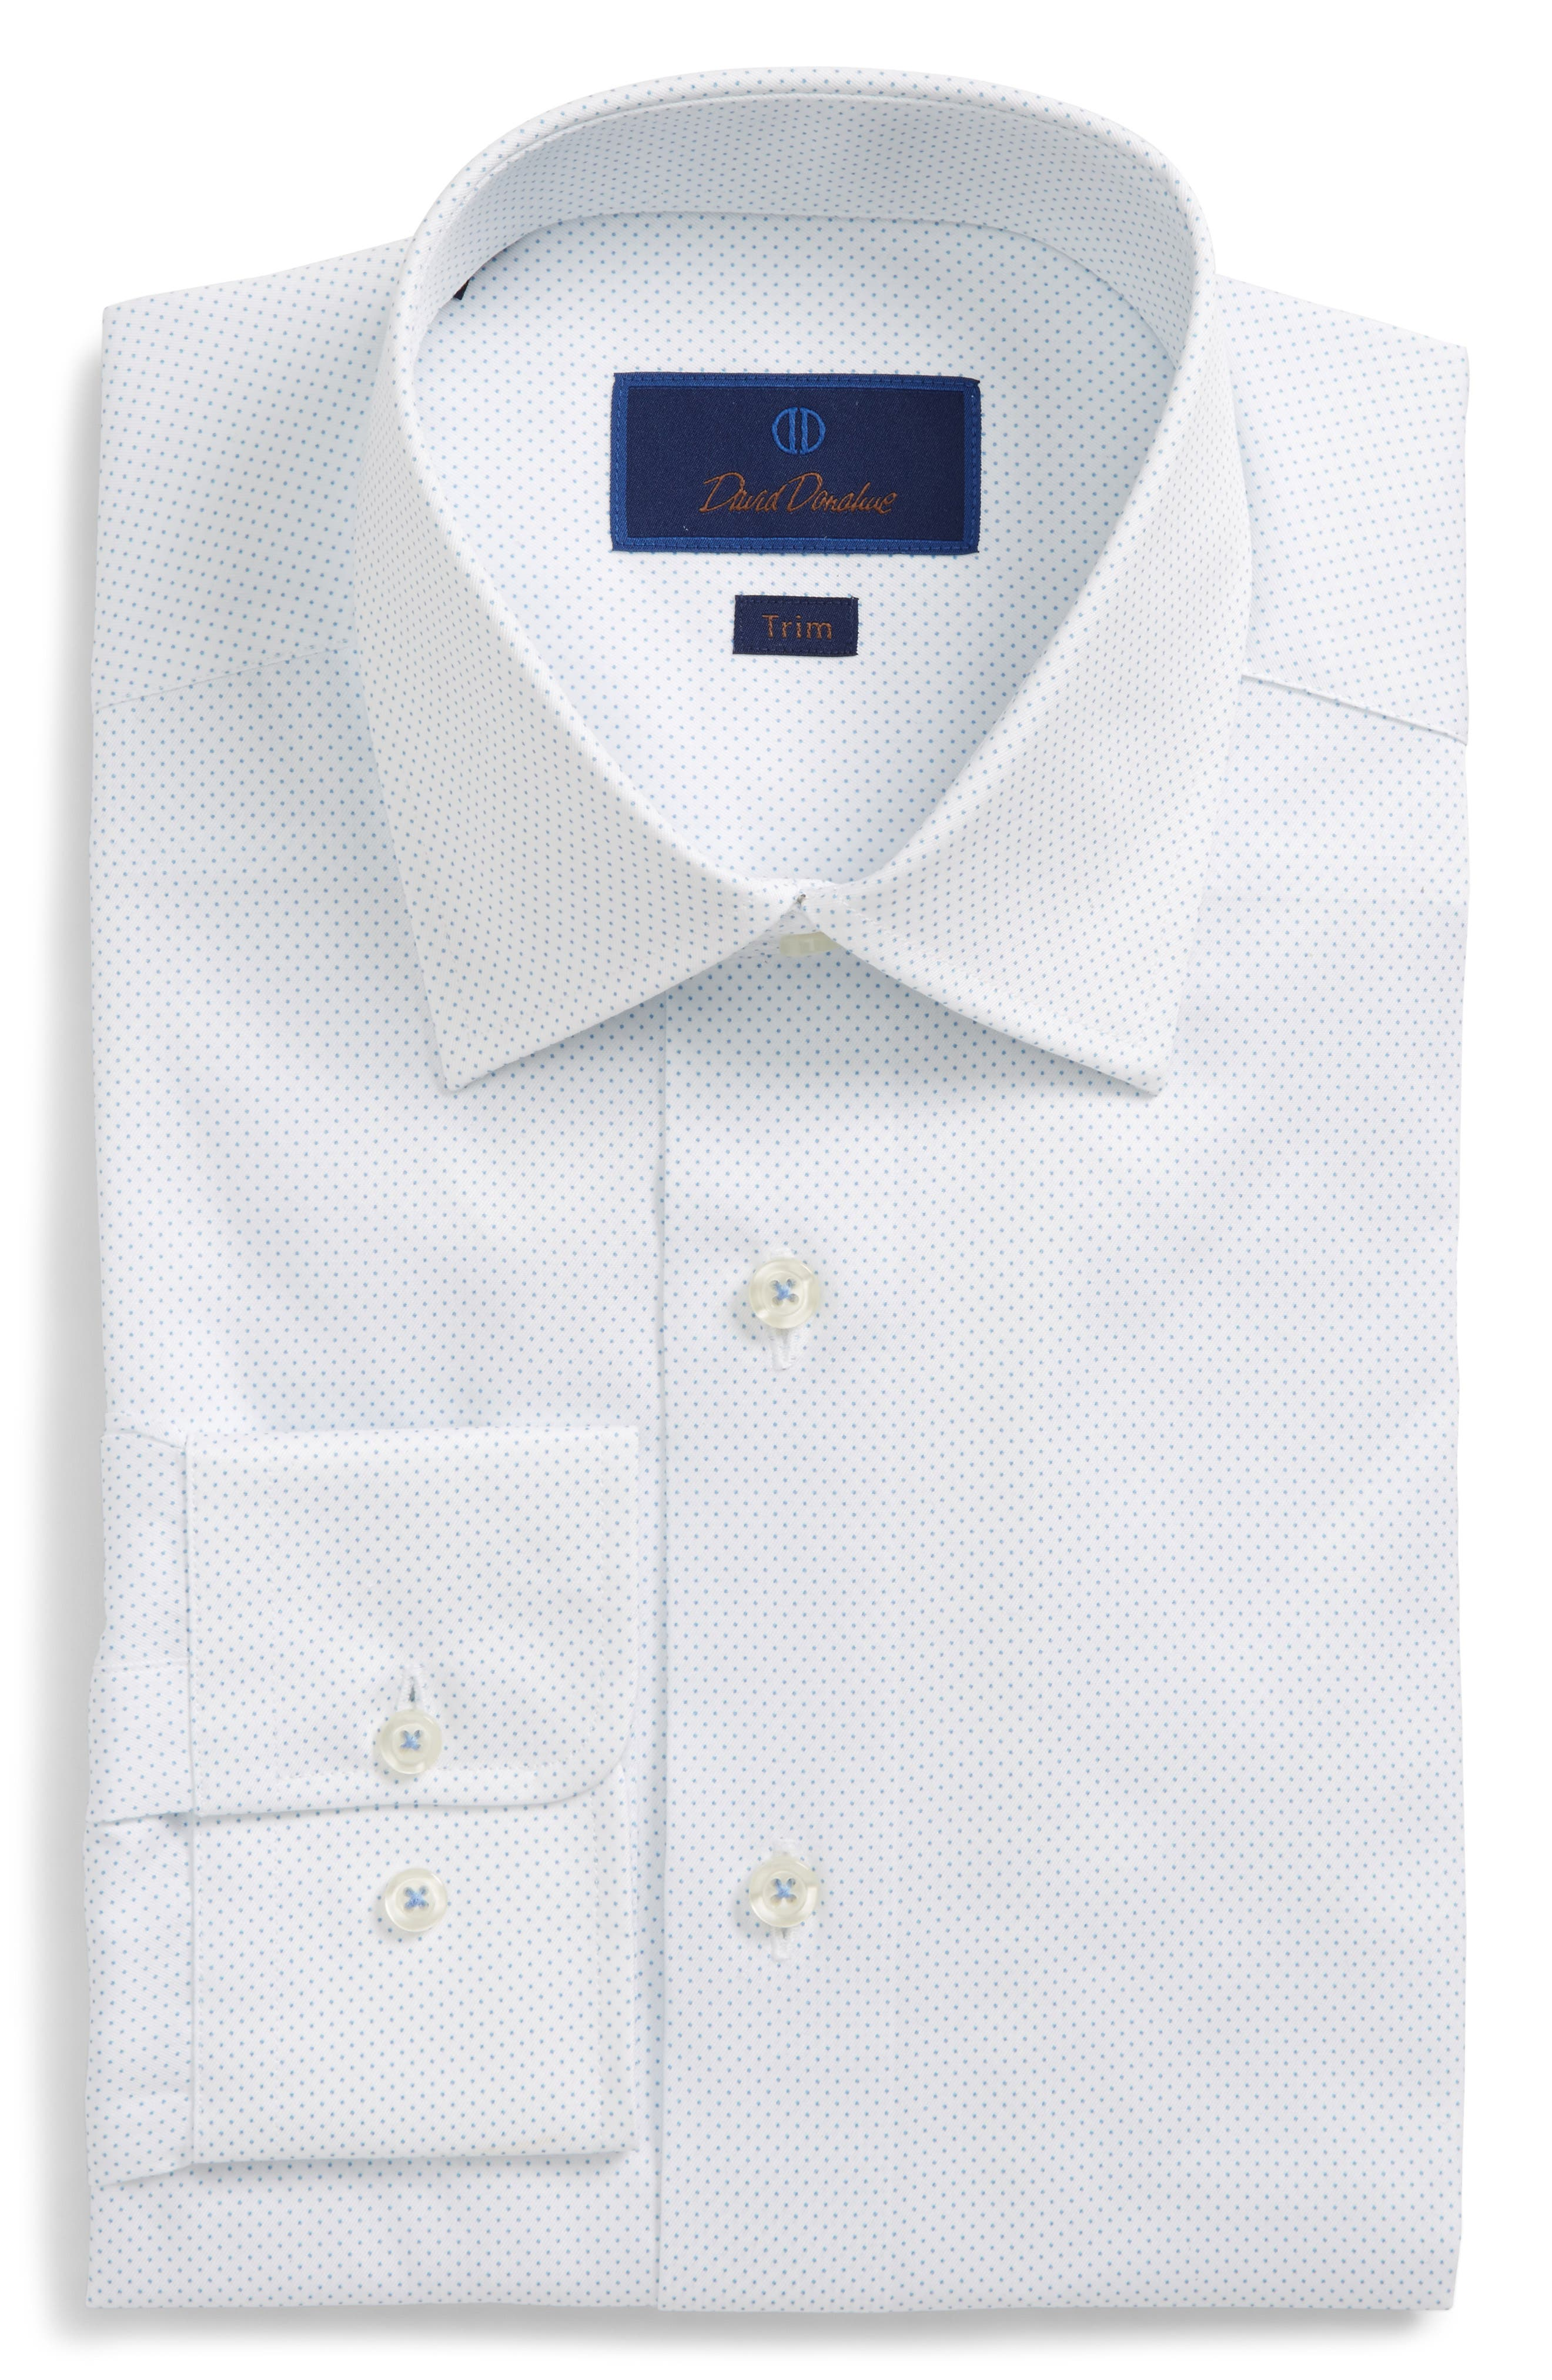 Trim Fit Dot Dress Shirt,                         Main,                         color, White/ Blue